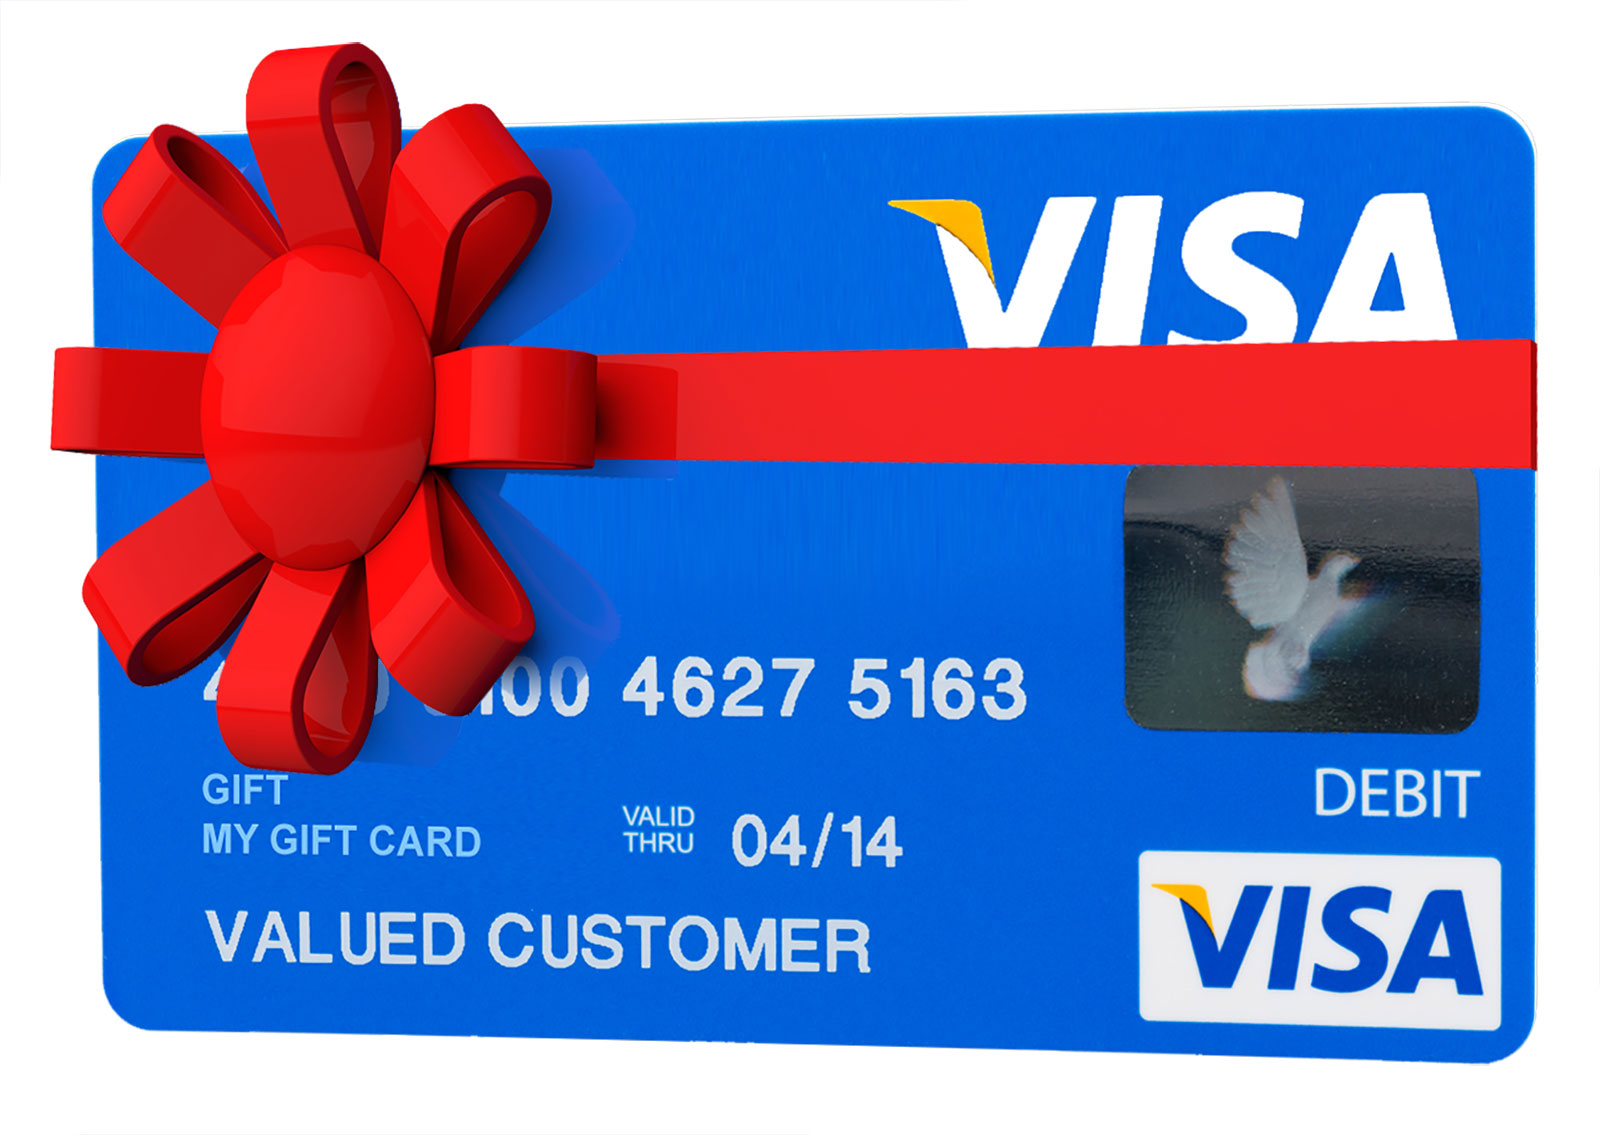 Visa Gift Cards With No Activation Fees  LoveToKnow